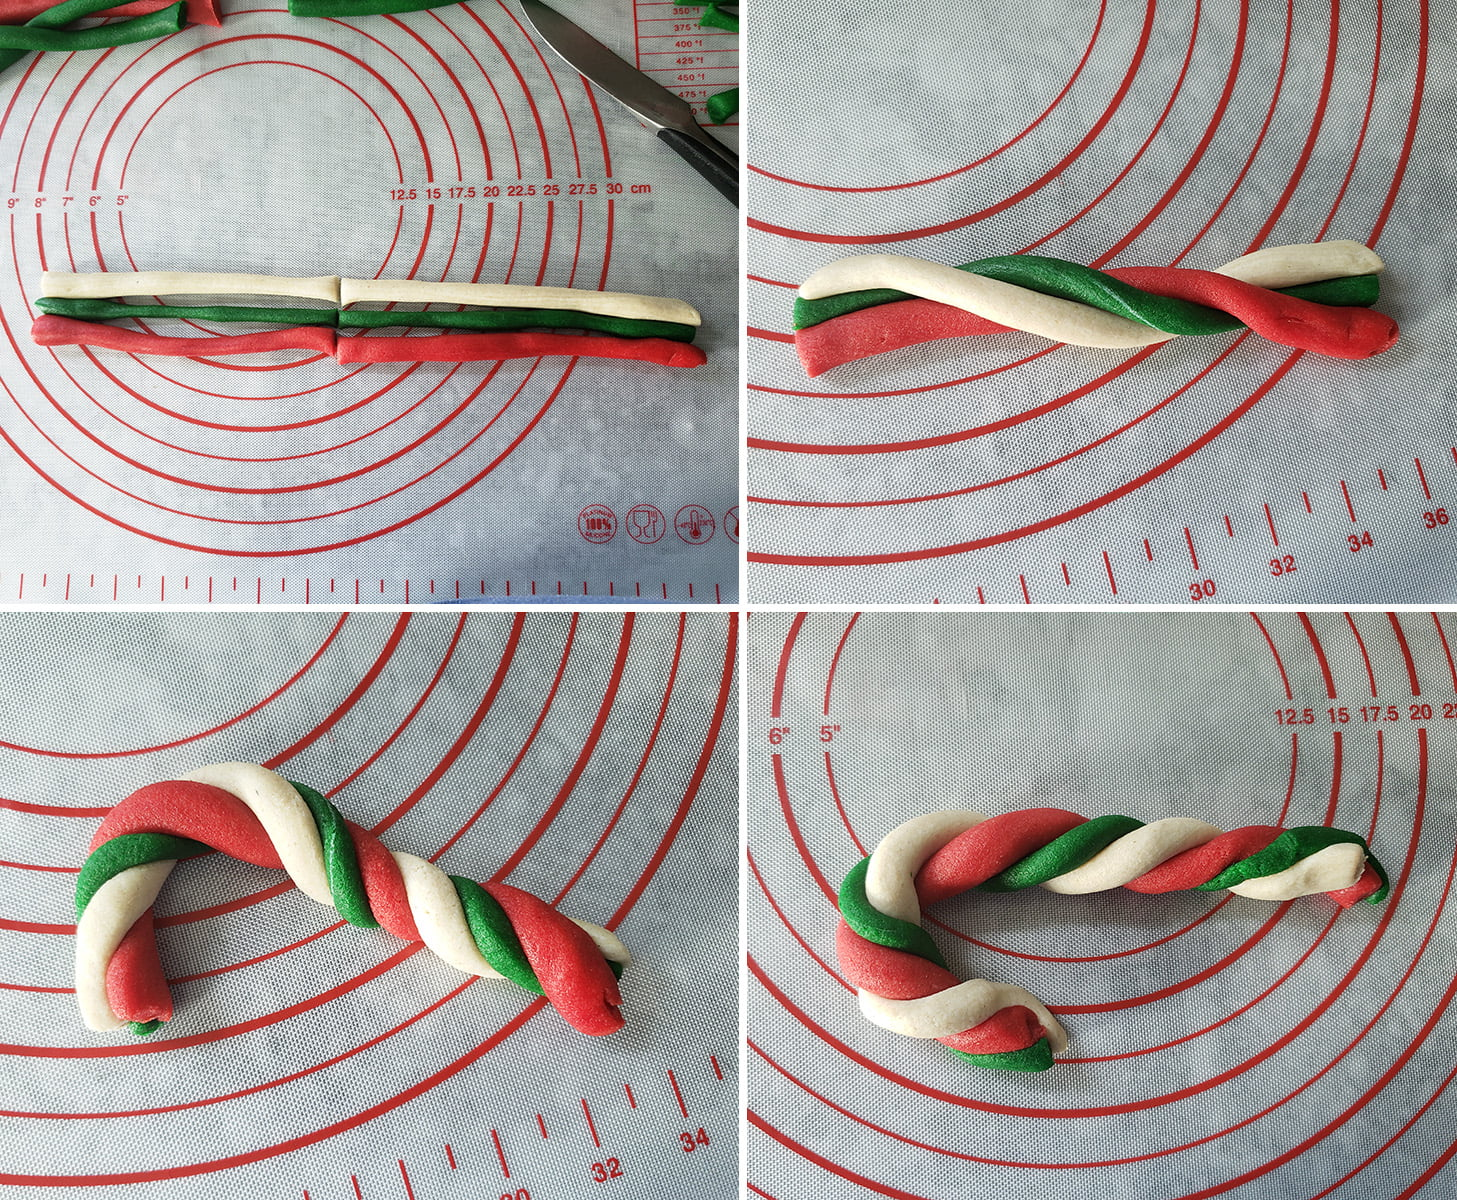 a 4 photo collage demonstrating the second rolling technique described.